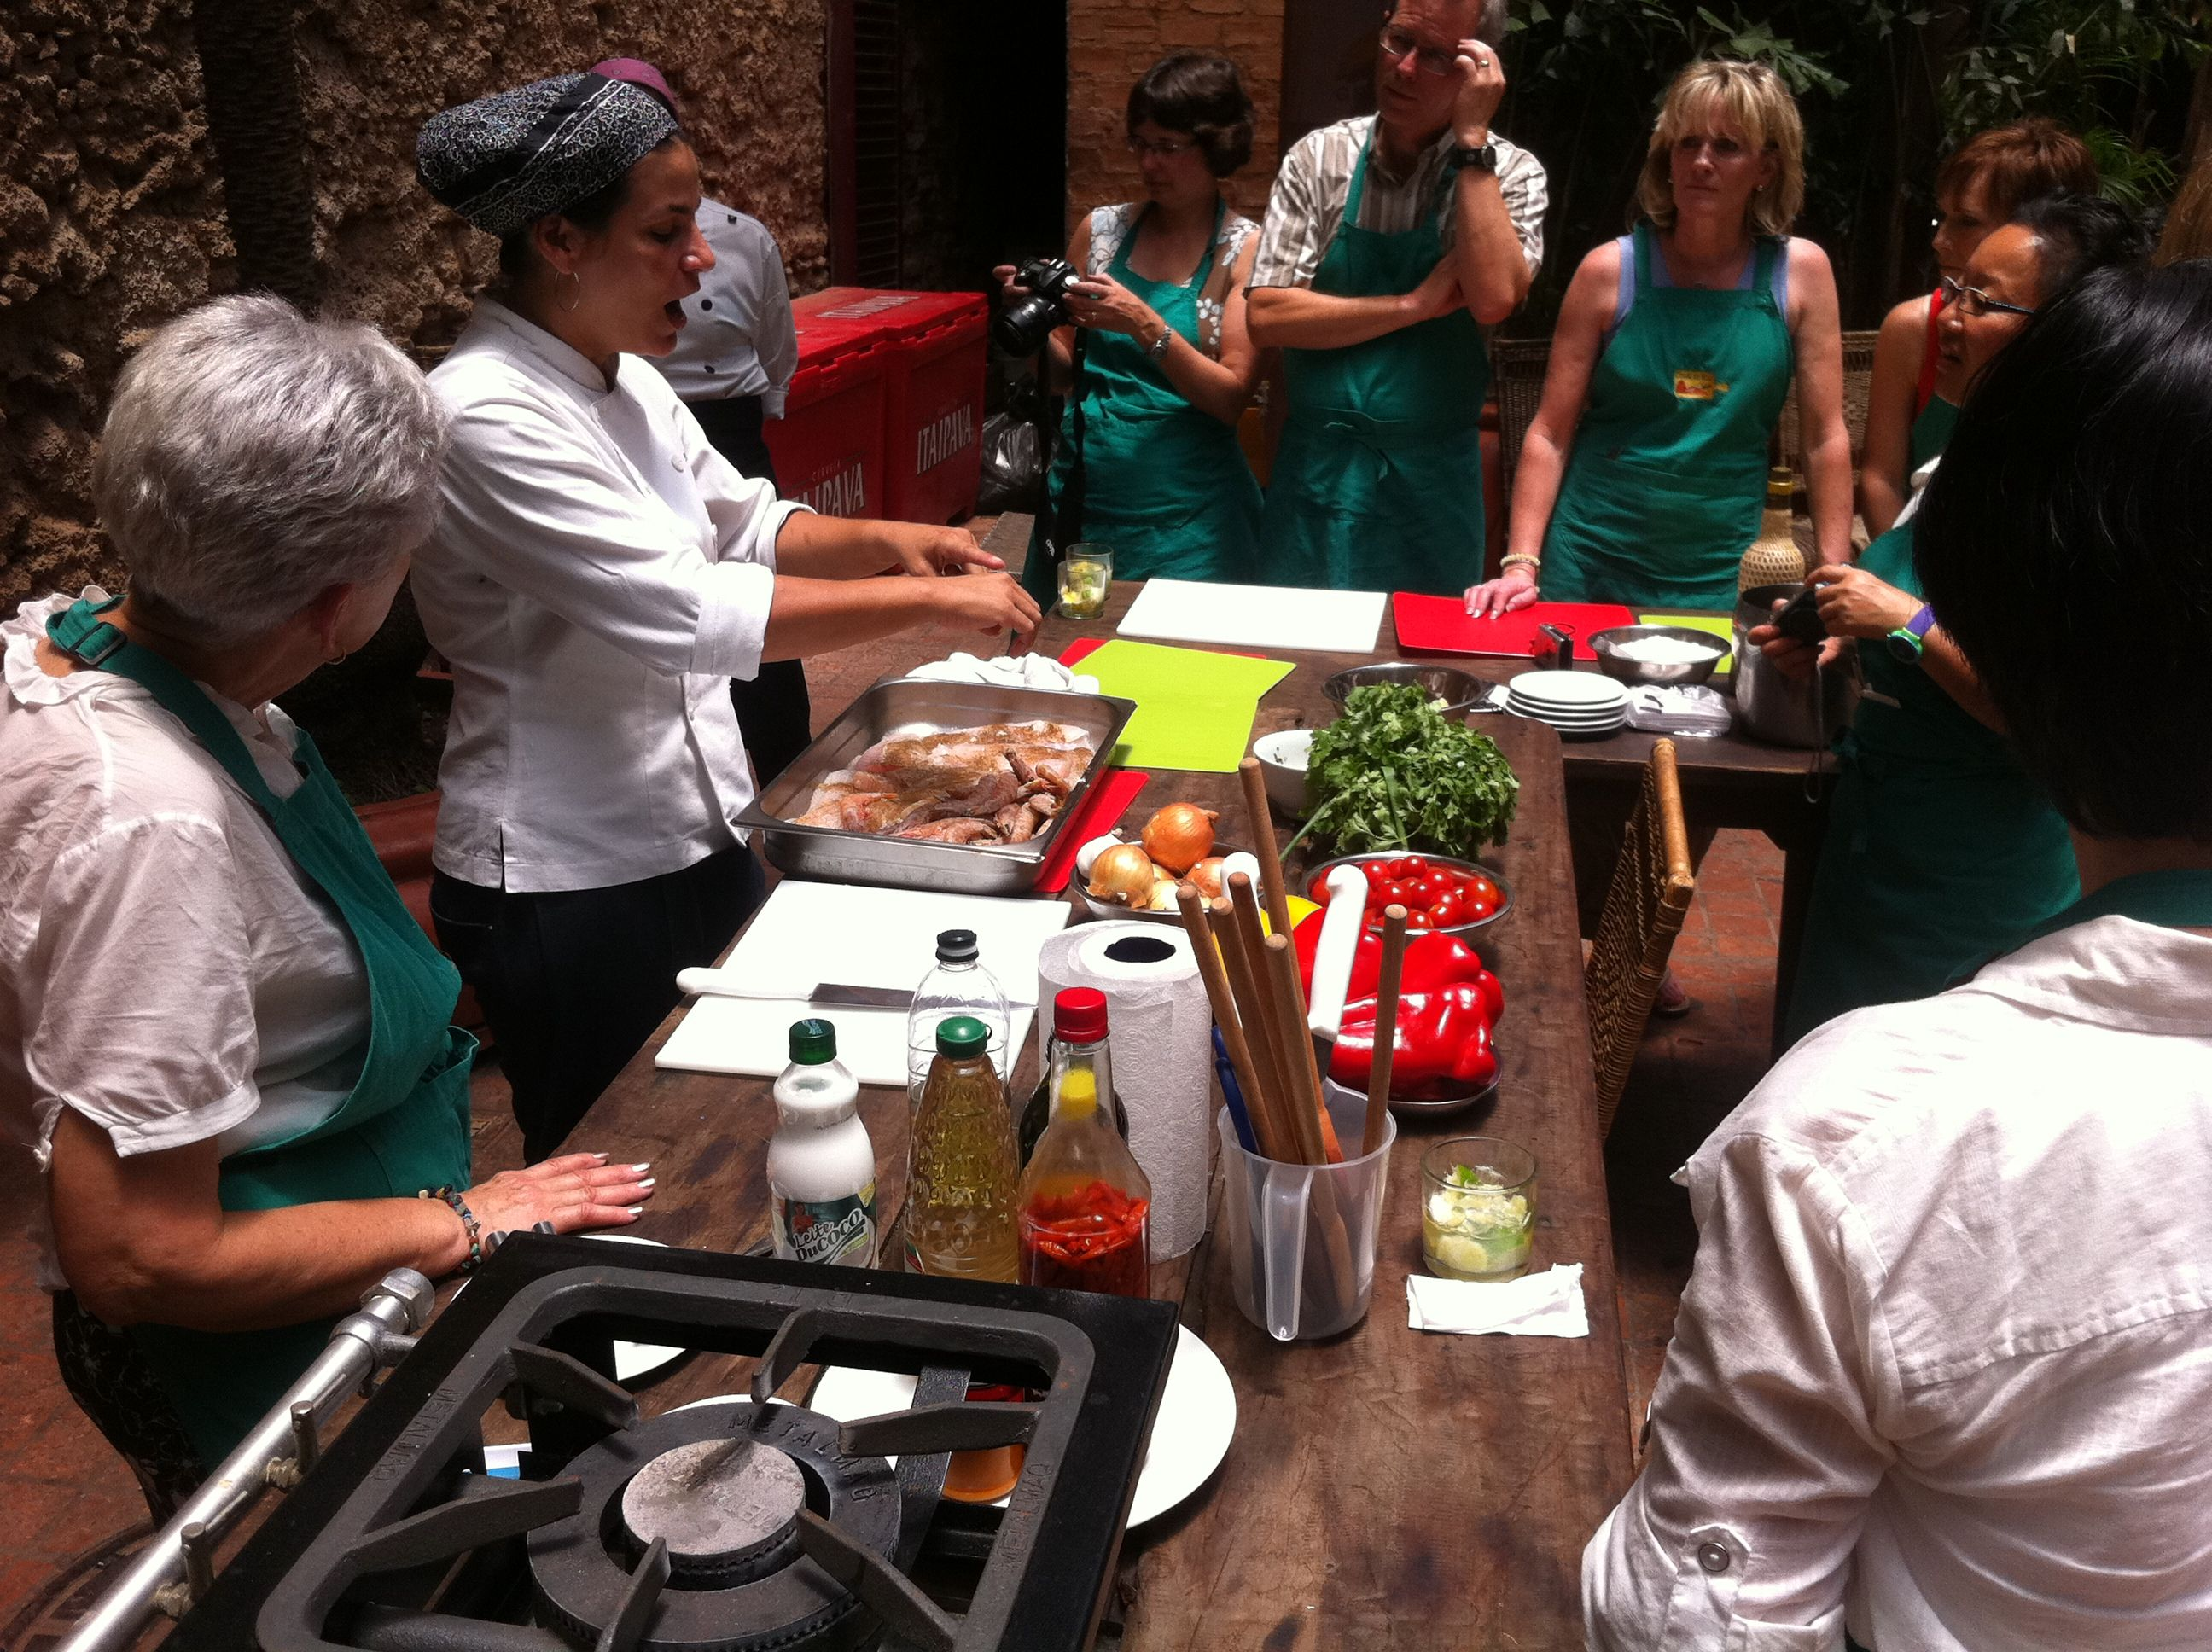 Cooking Class for over 7 pax in our Centro address